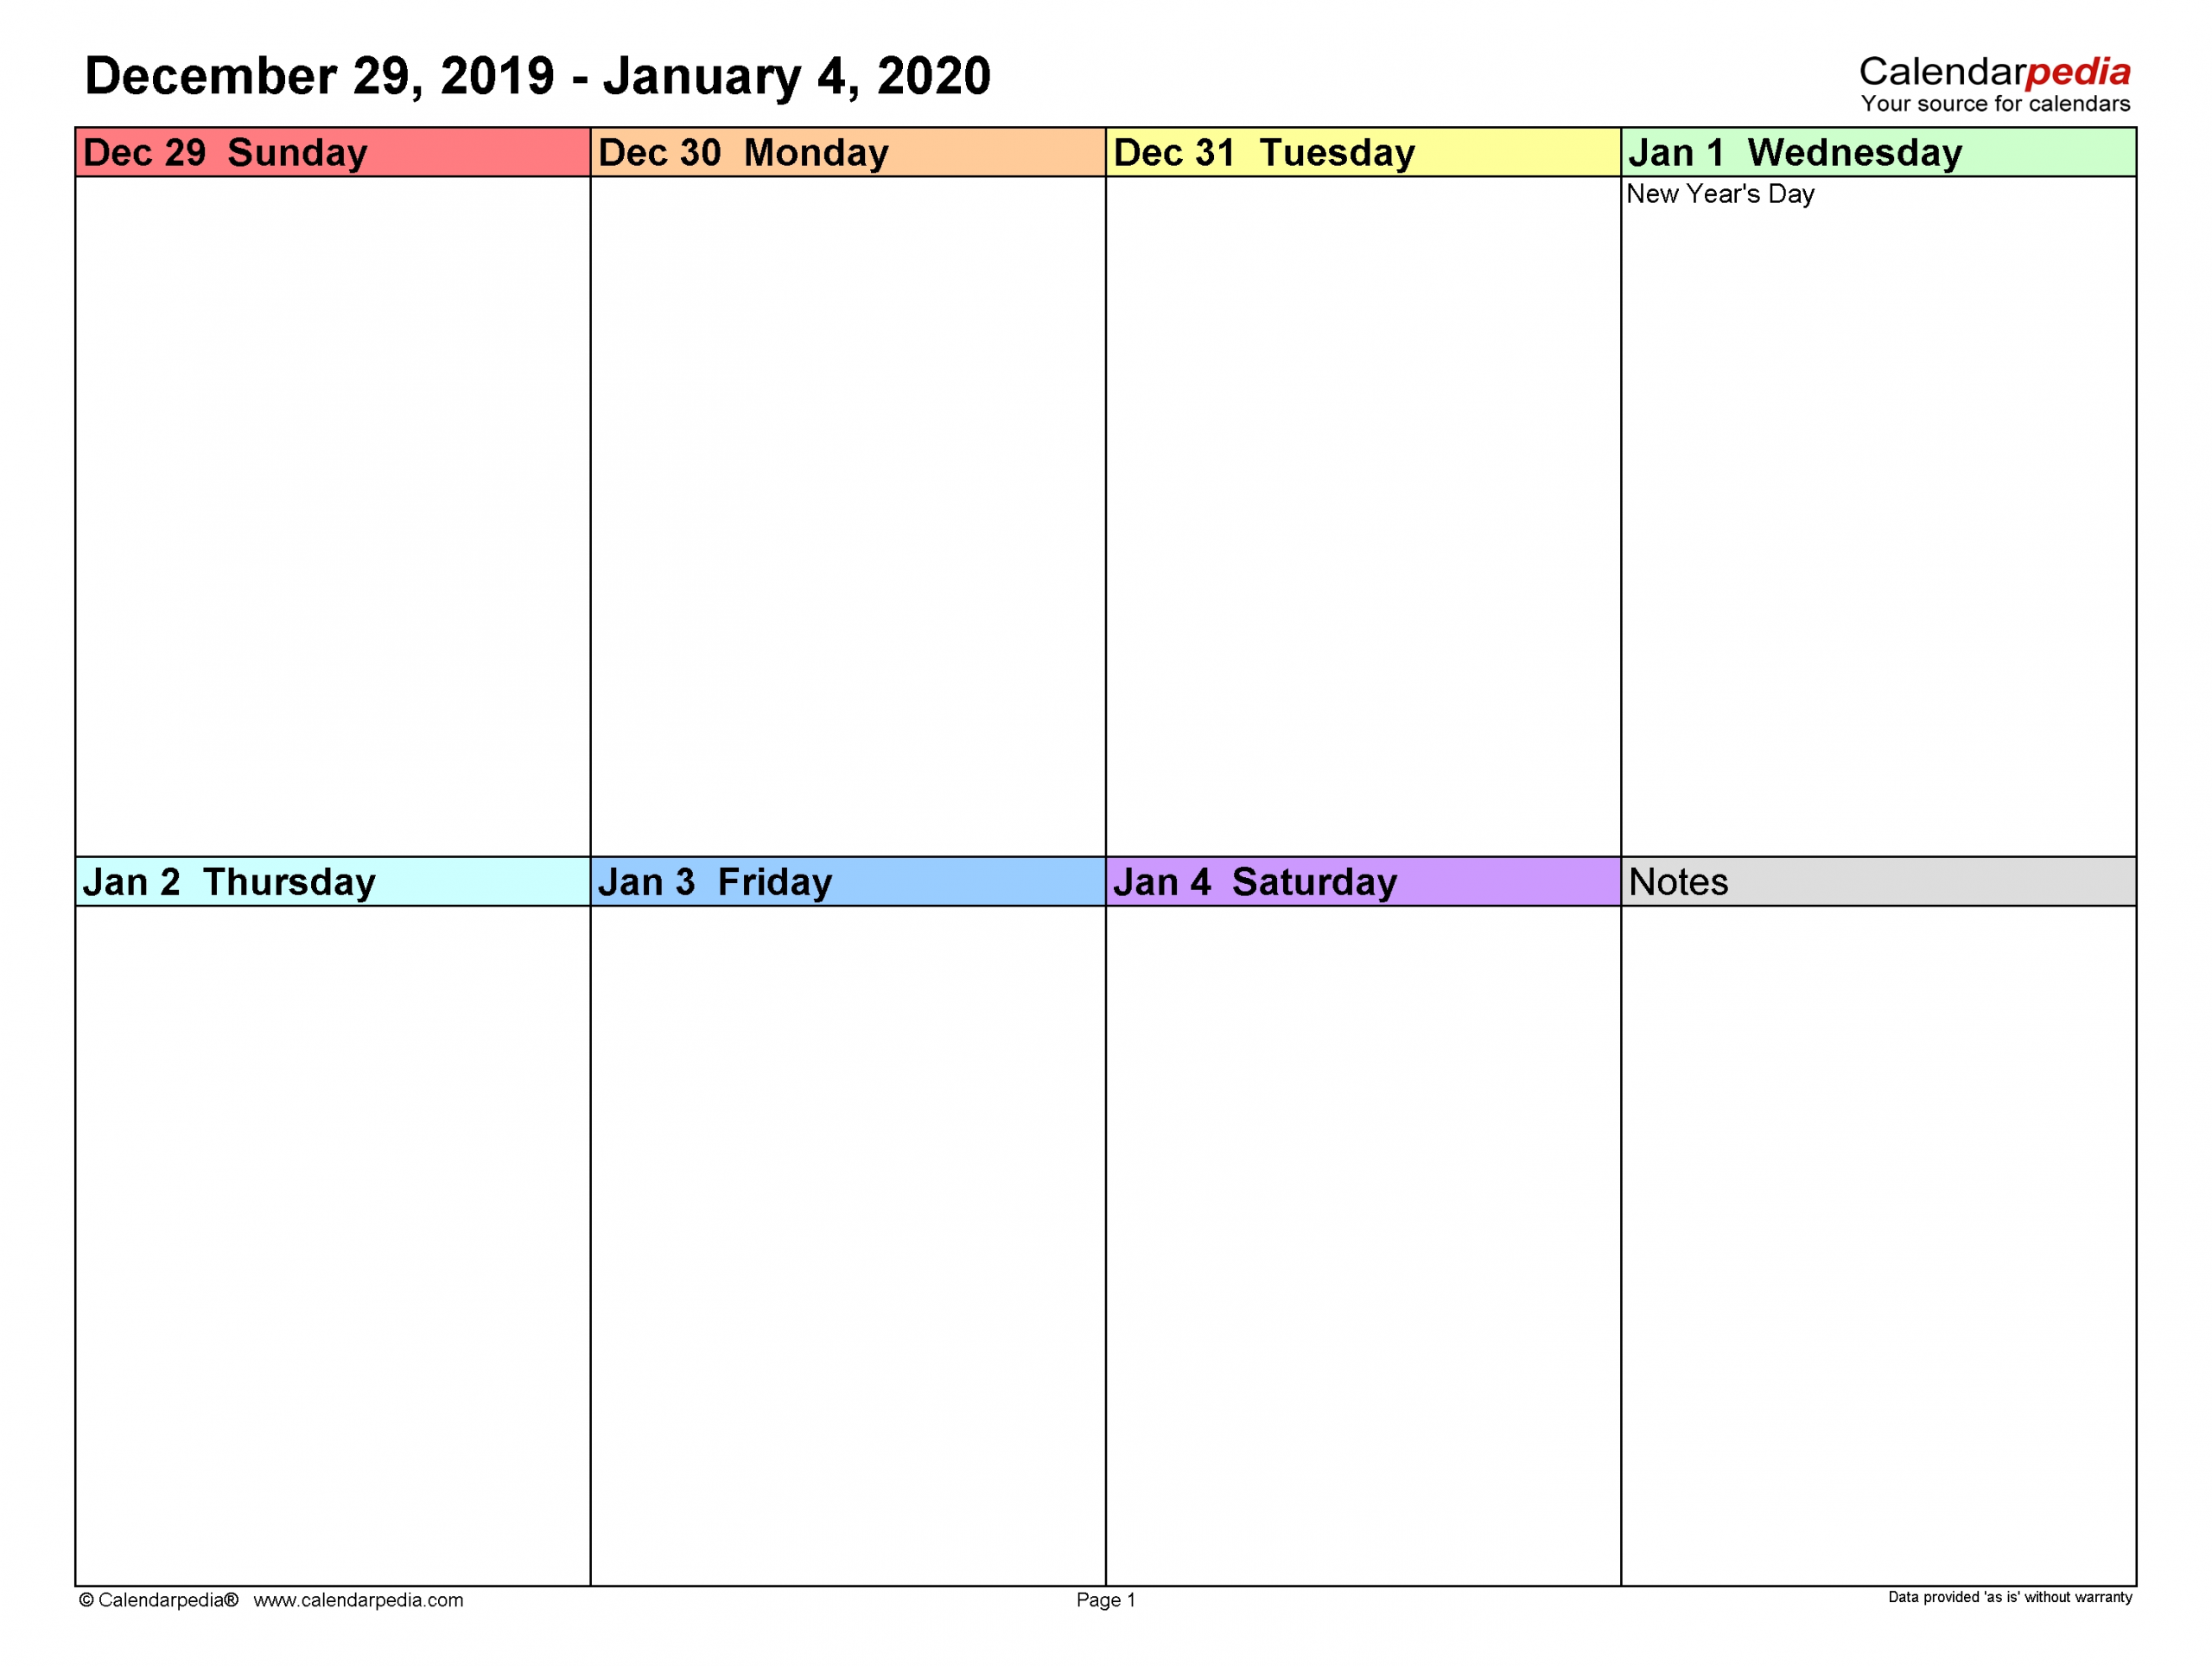 Weekly Calendars 2020 For Pdf - 12 Free Printable Templates